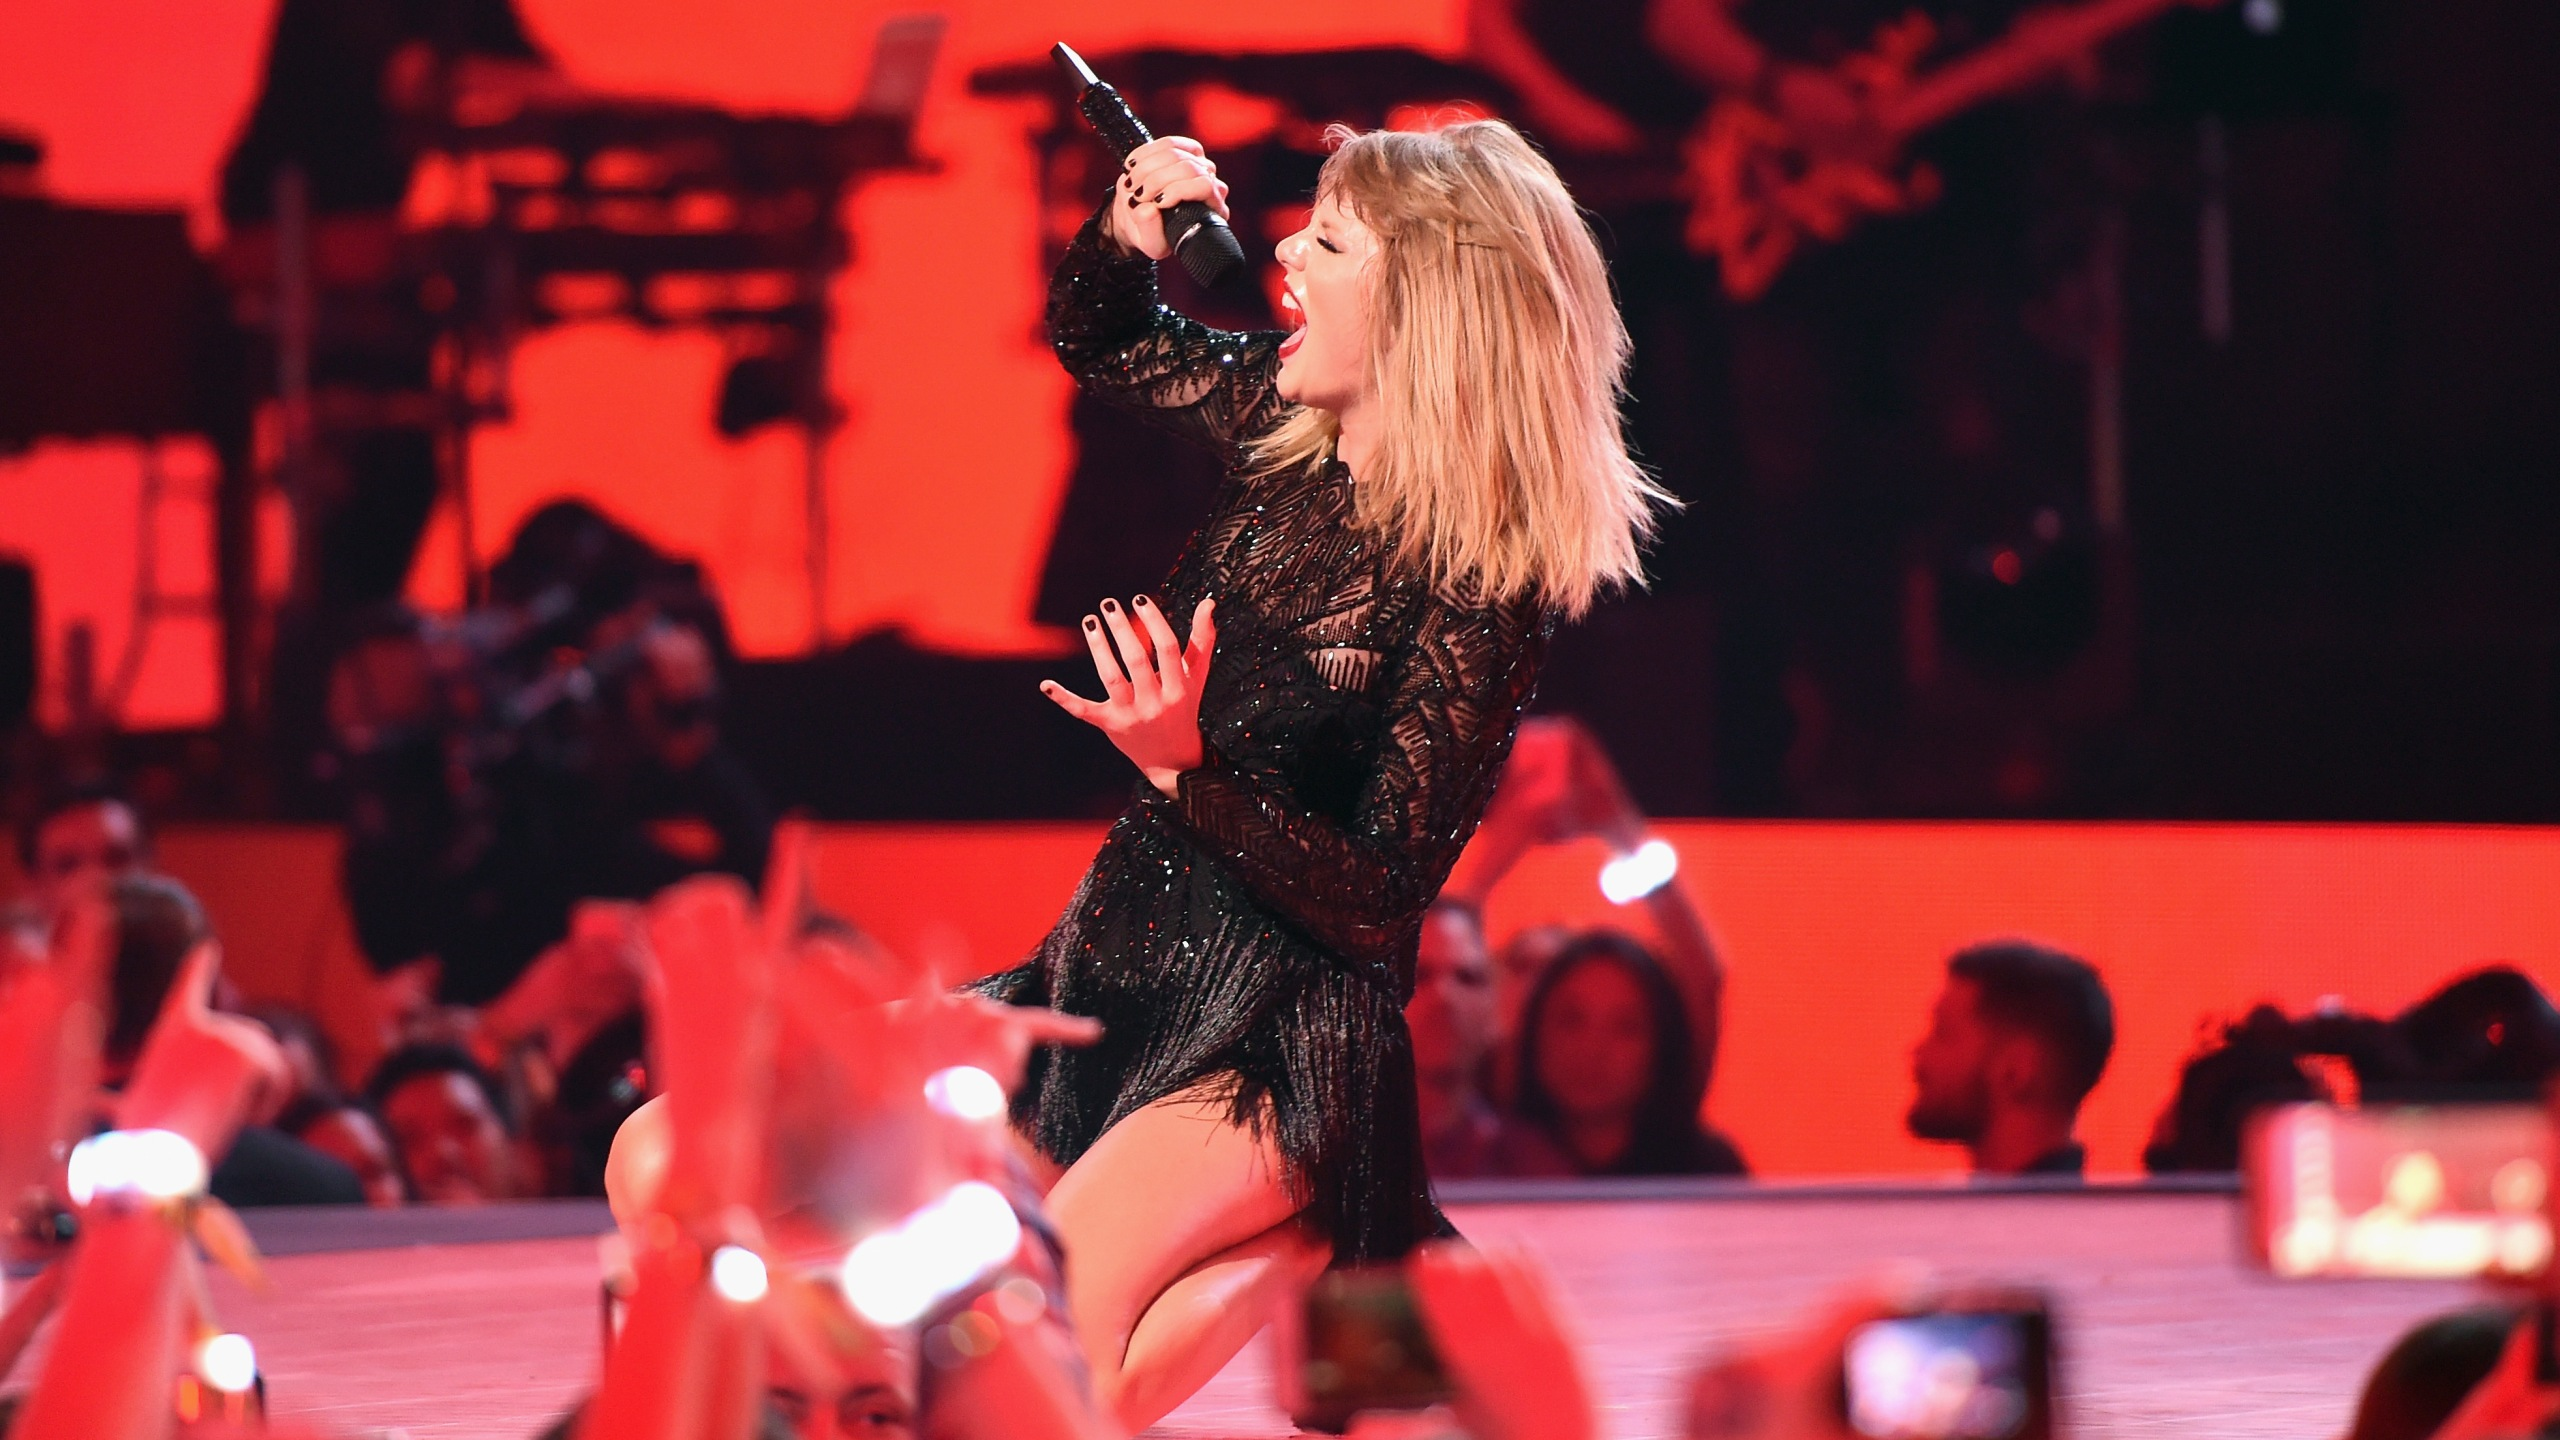 Taylor Swift To Perform At Lucas Oil Stadium In September For Reputation Tour Fox 59